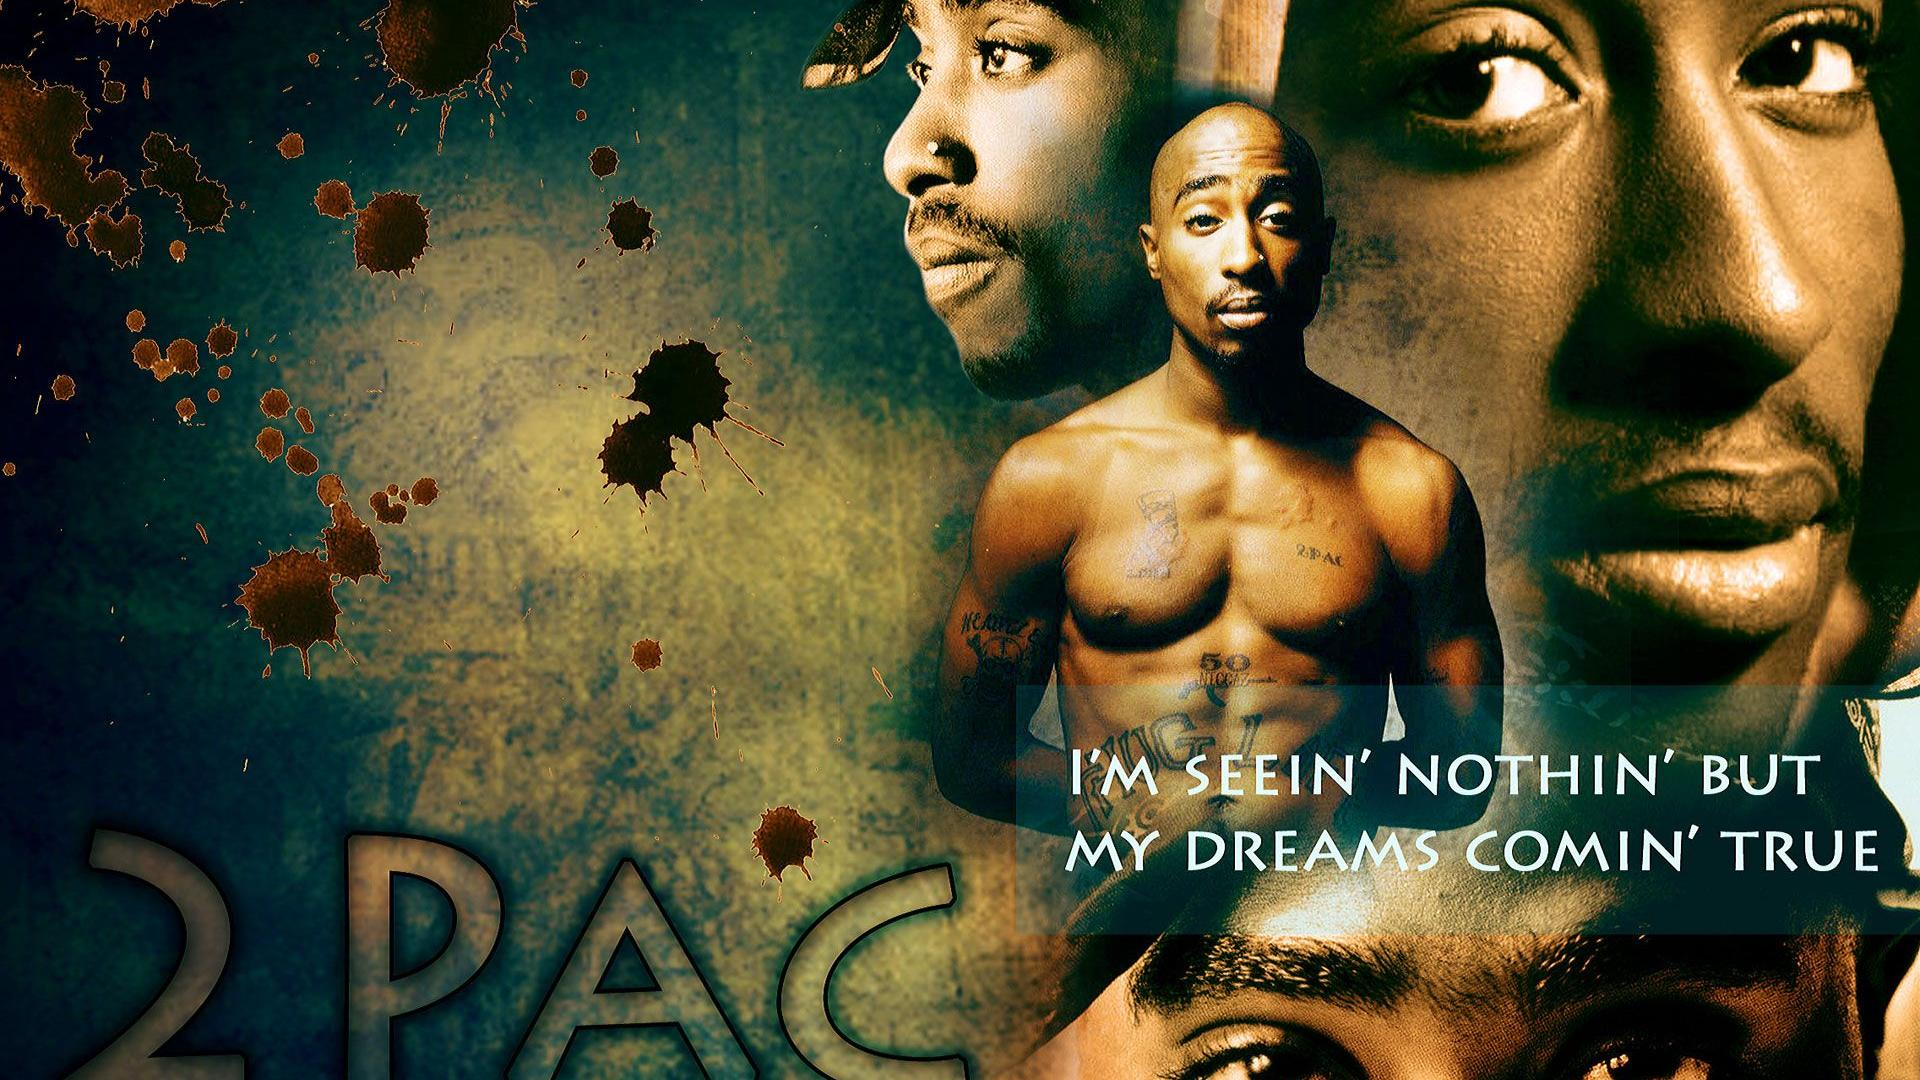 free 2pac wallpapers download | wallpaper.wiki